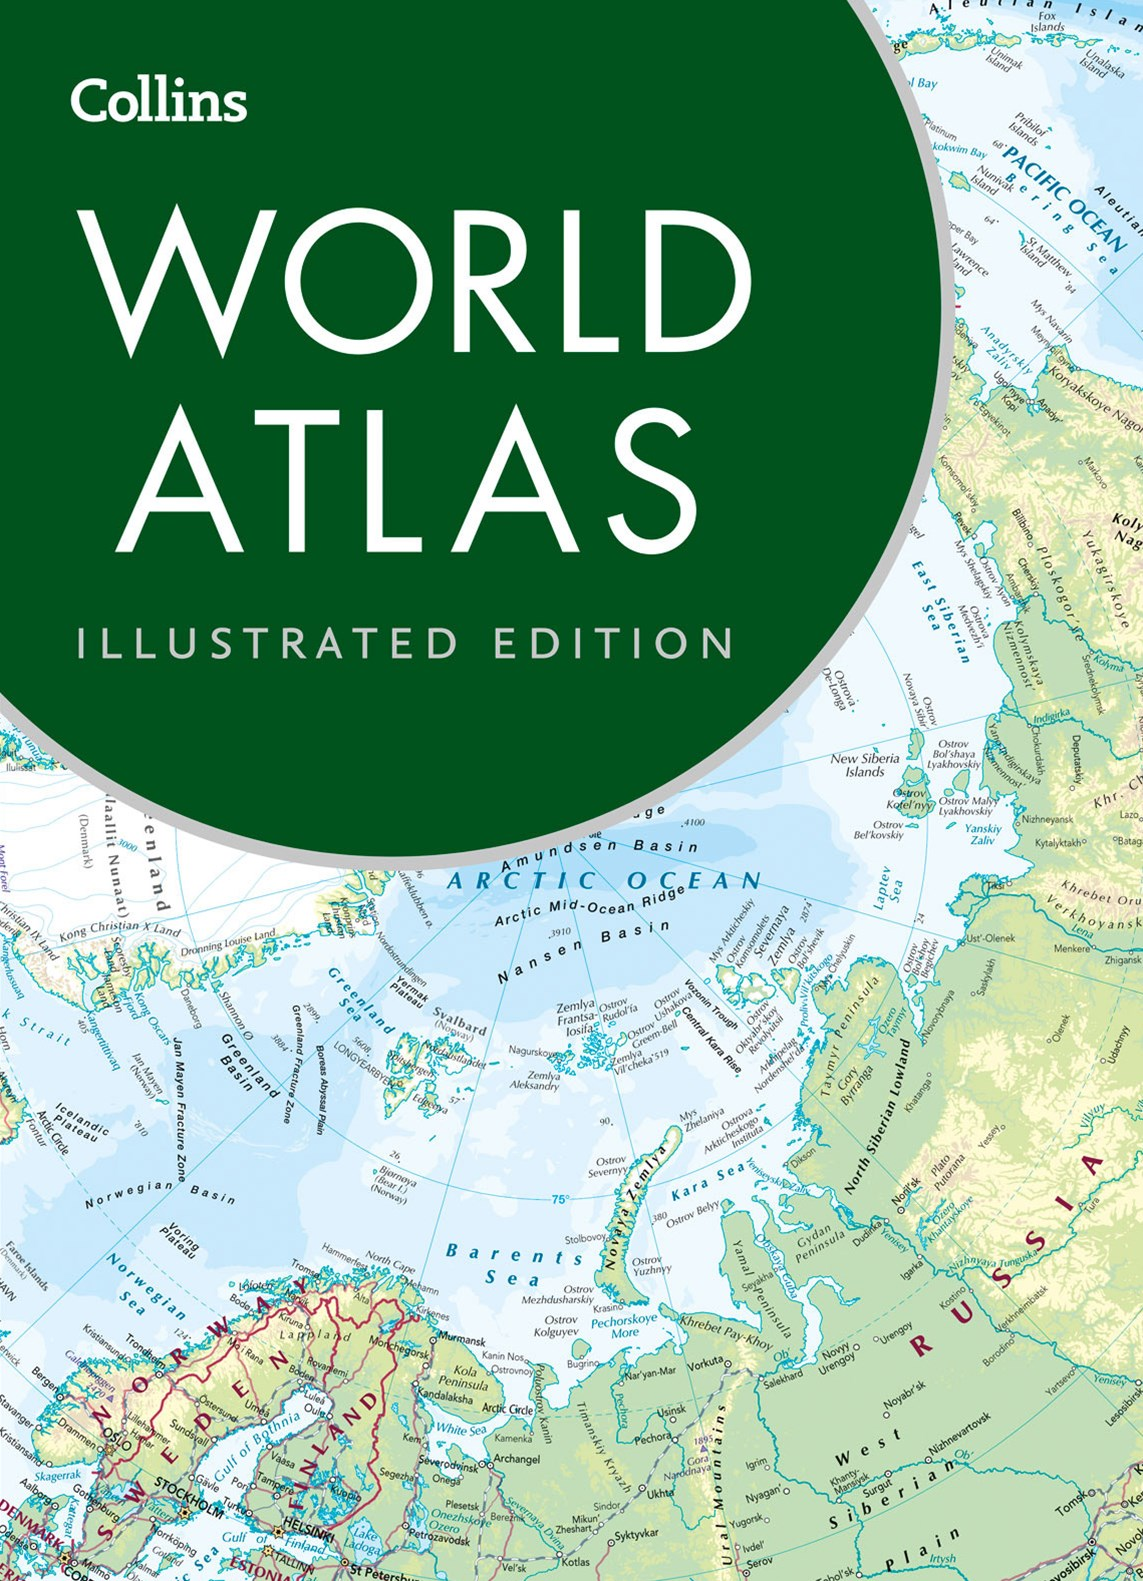 Collins World Atlas: Illustrated Edition [6th Edition]